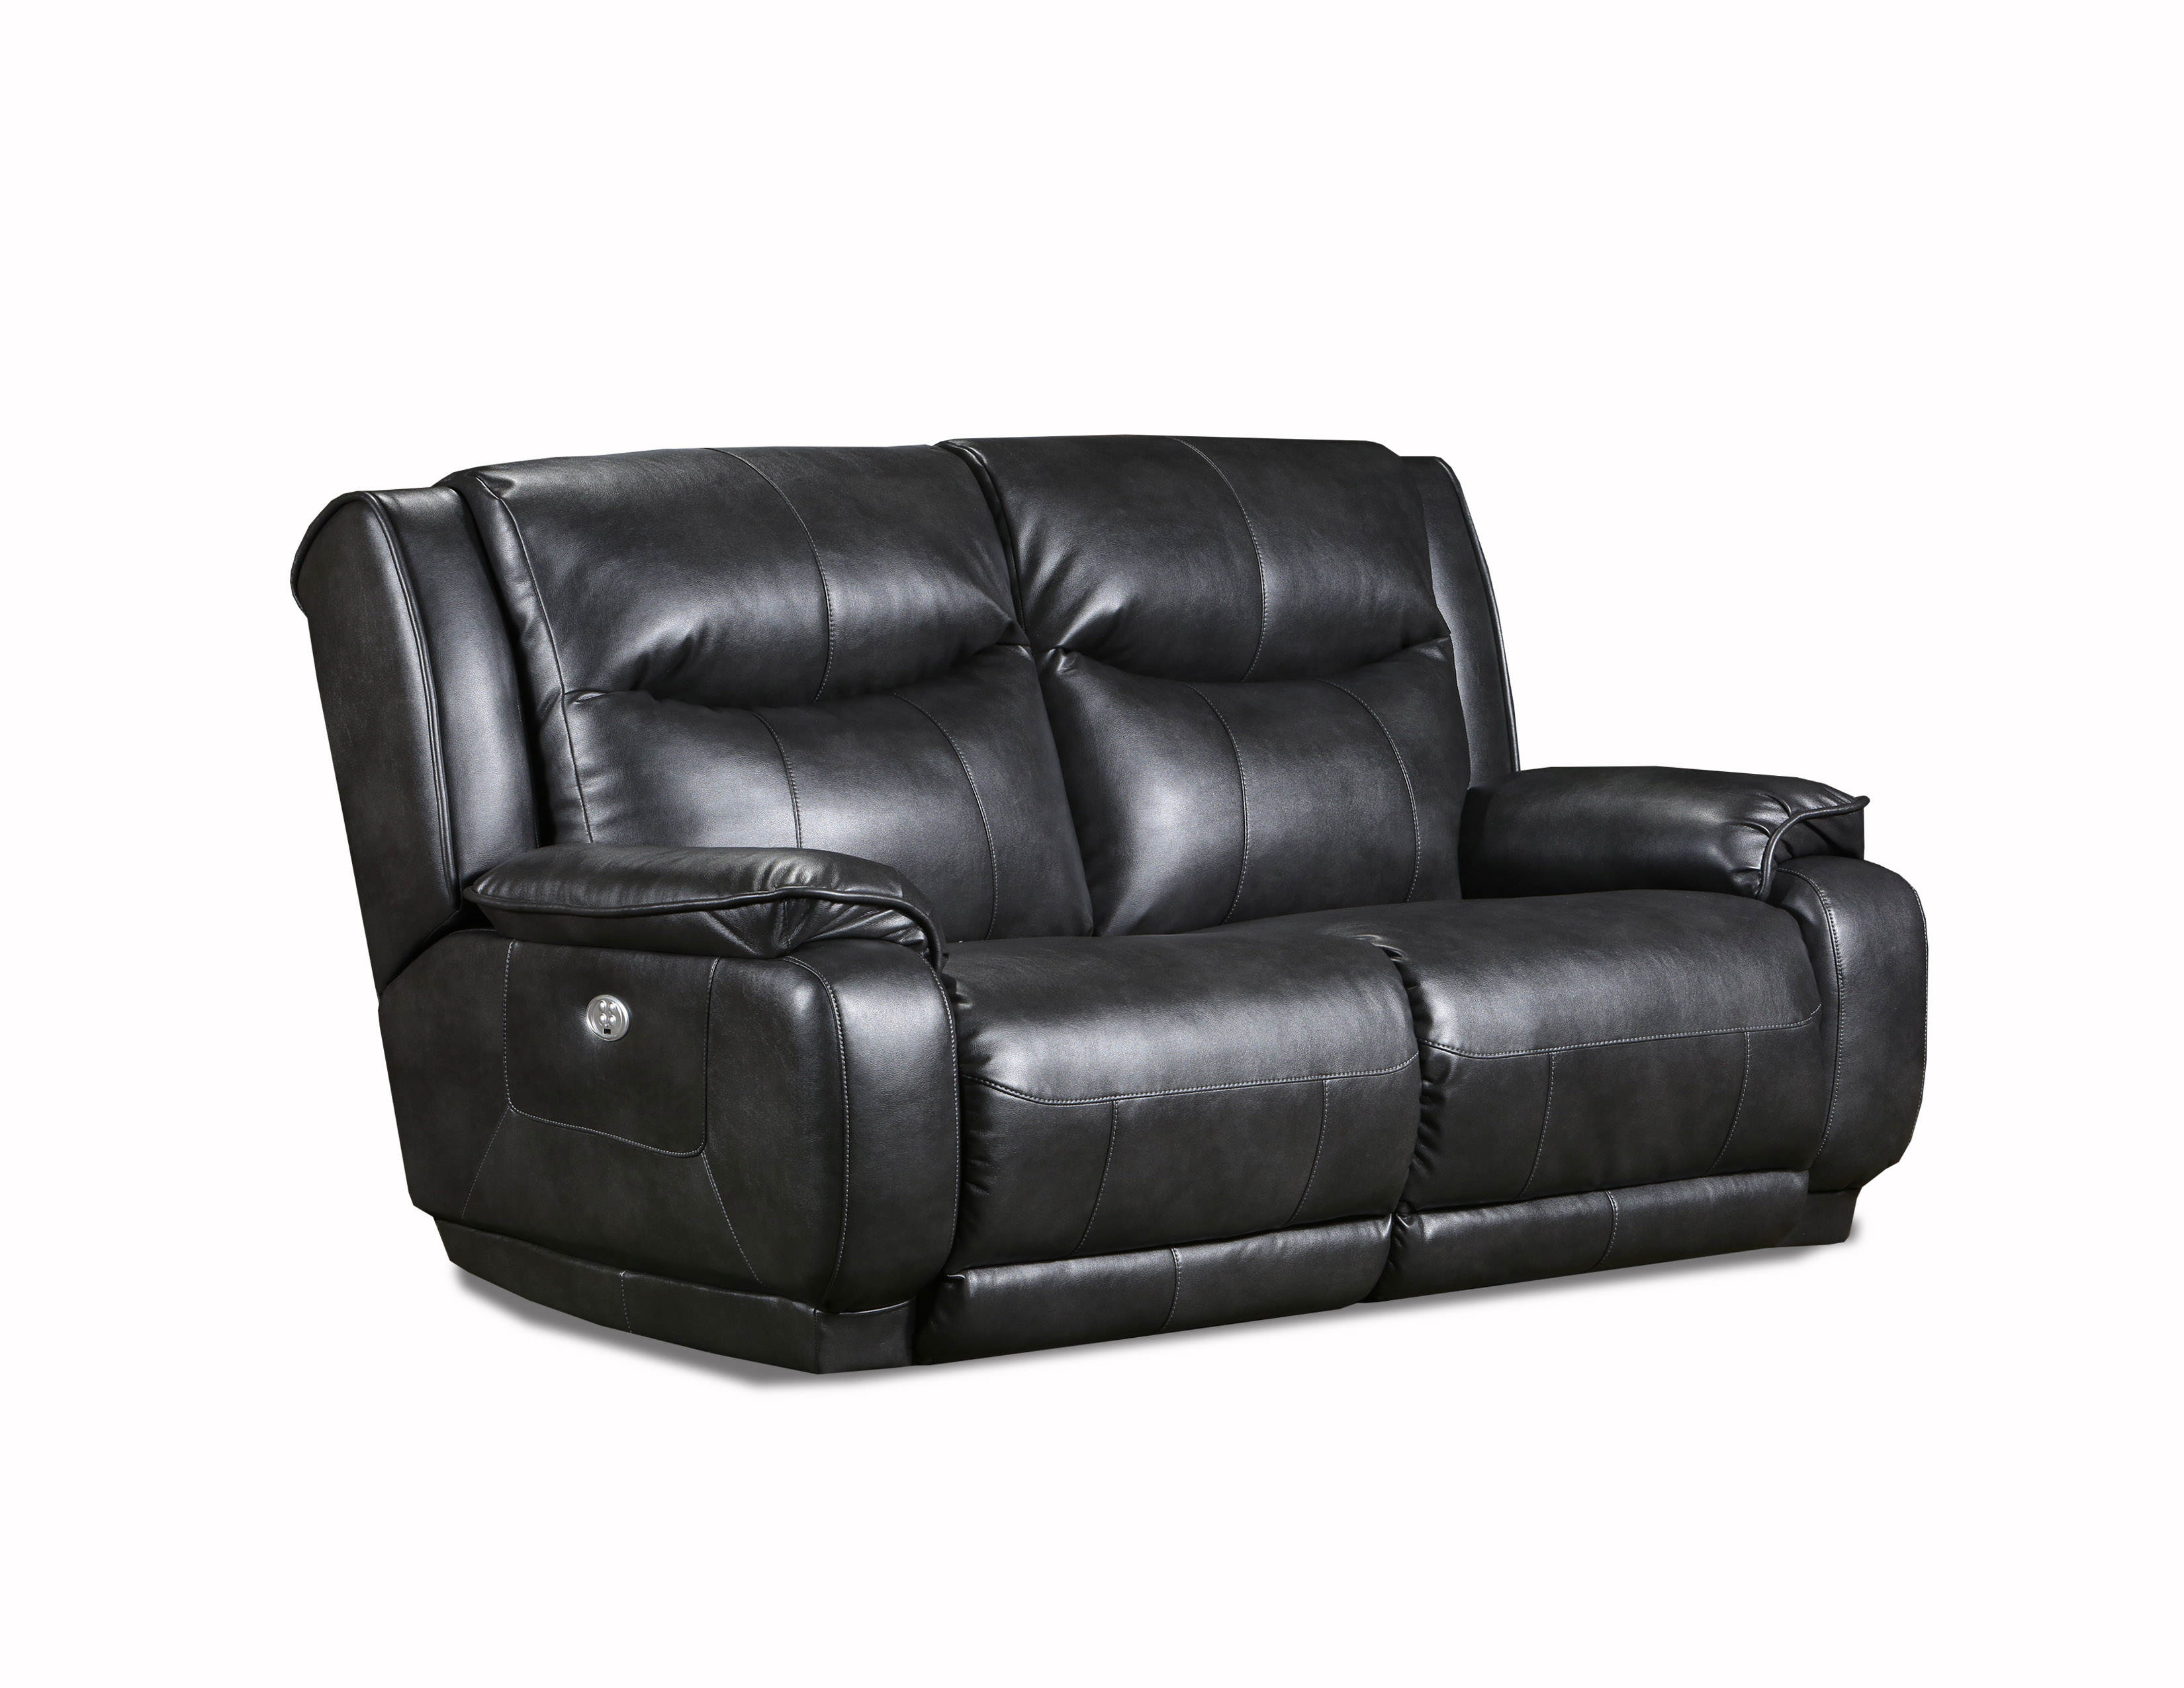 Strange Southern Motion Velocity Grey Double Reclining Loveseat Alphanode Cool Chair Designs And Ideas Alphanodeonline